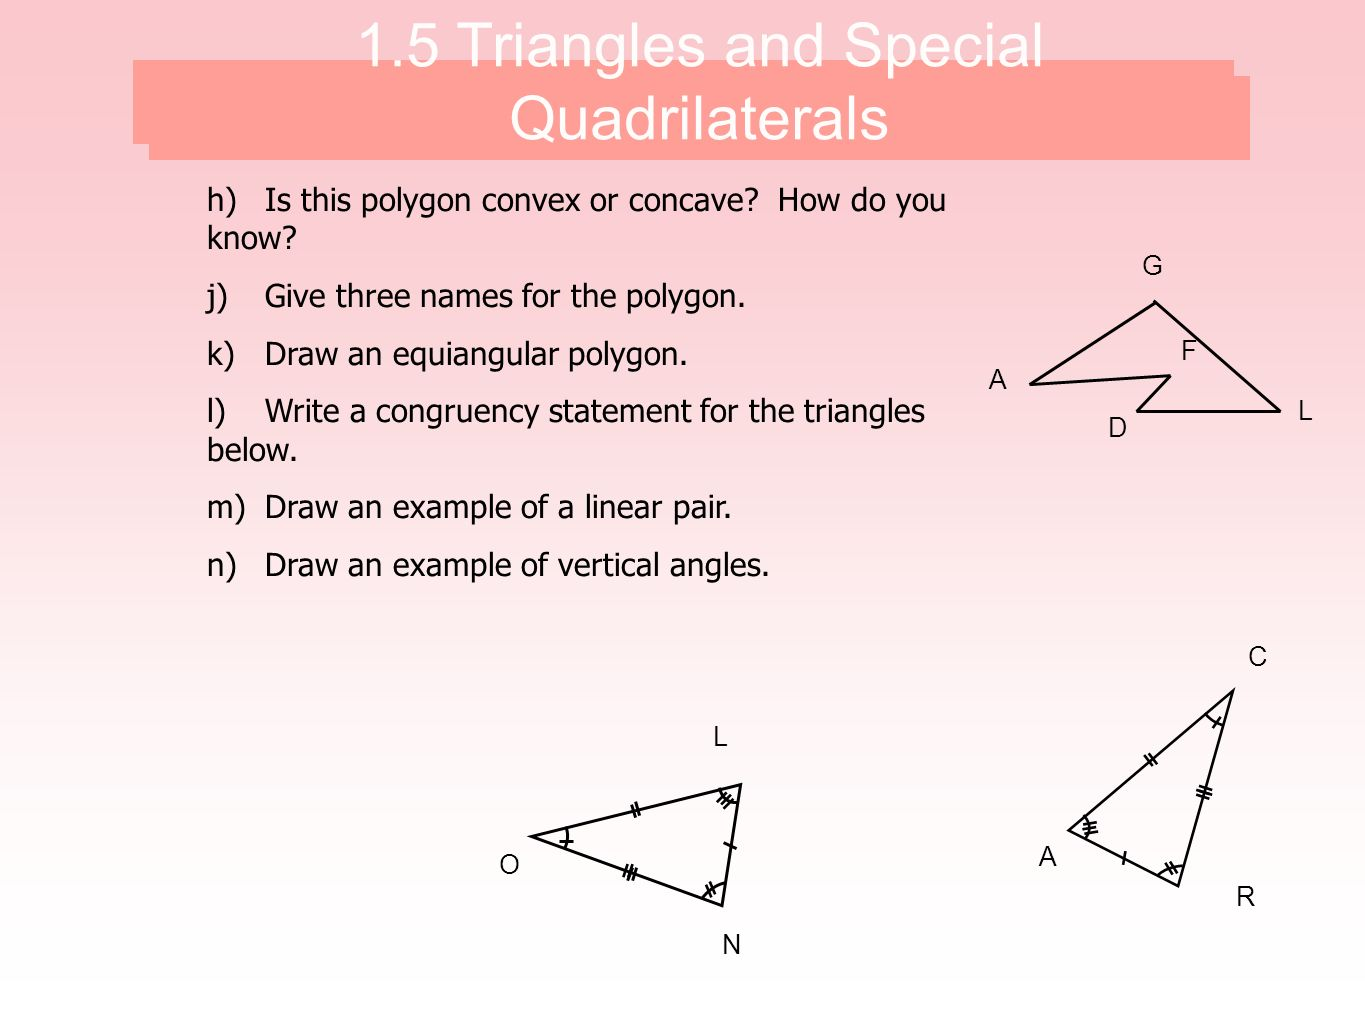 h)Is this polygon convex or concave? How do you know? j)Give three names for the polygon. k)Draw an equiangular polygon. l)Write a congruency statemen